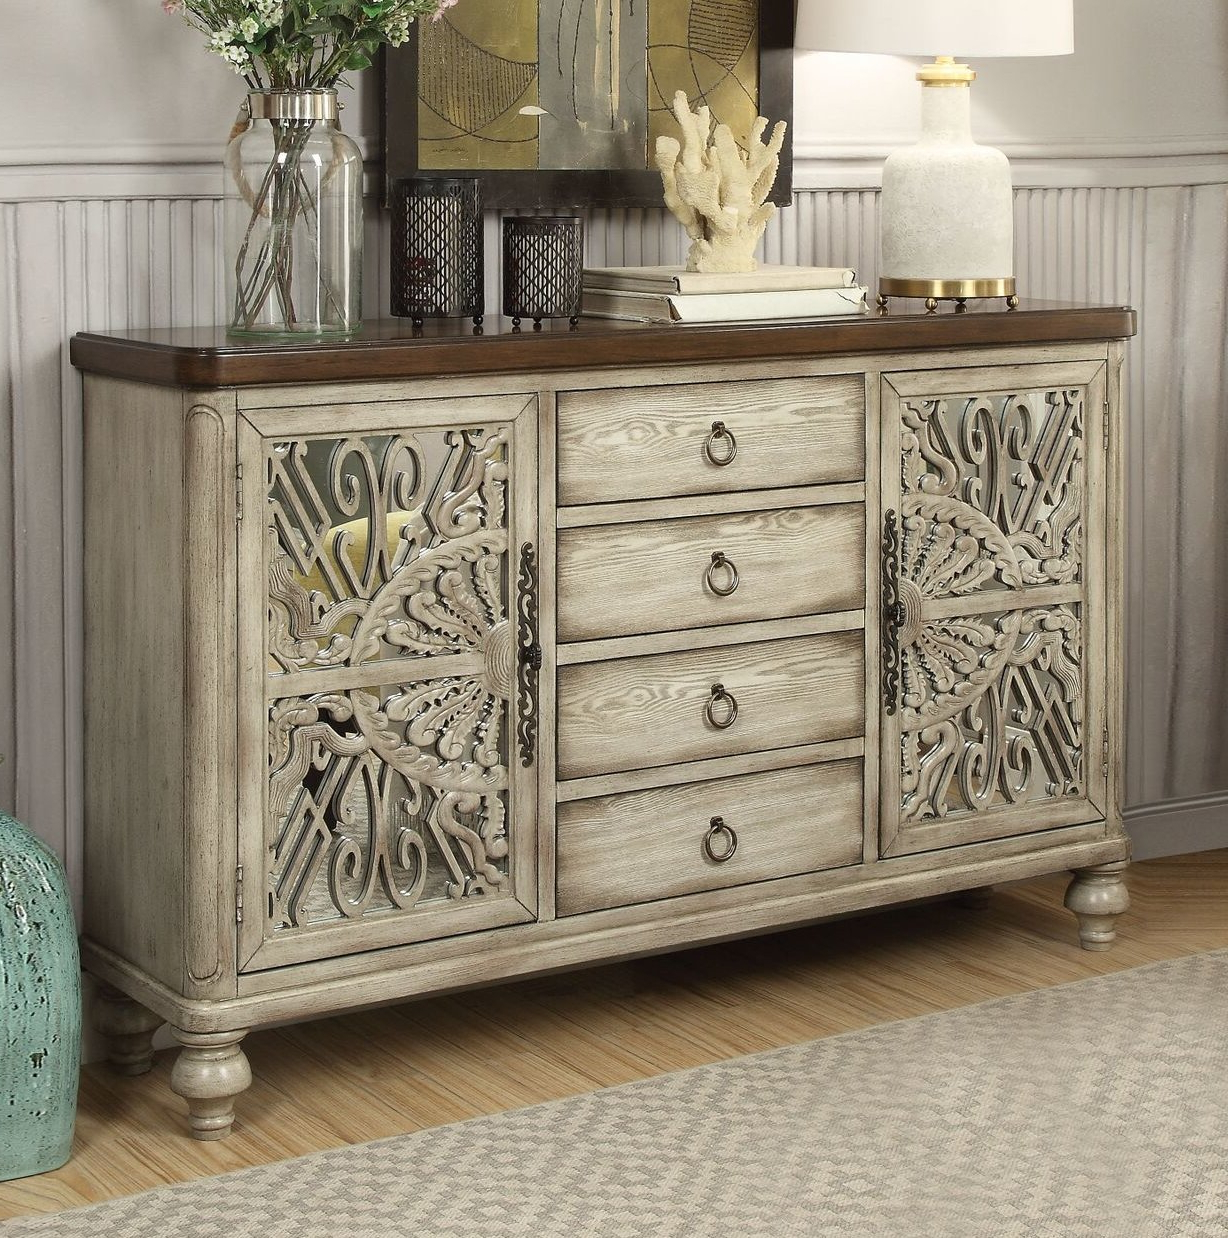 Chicoree Charlena Sideboards With Most Current Antique White Sideboard Buffet (View 9 of 20)